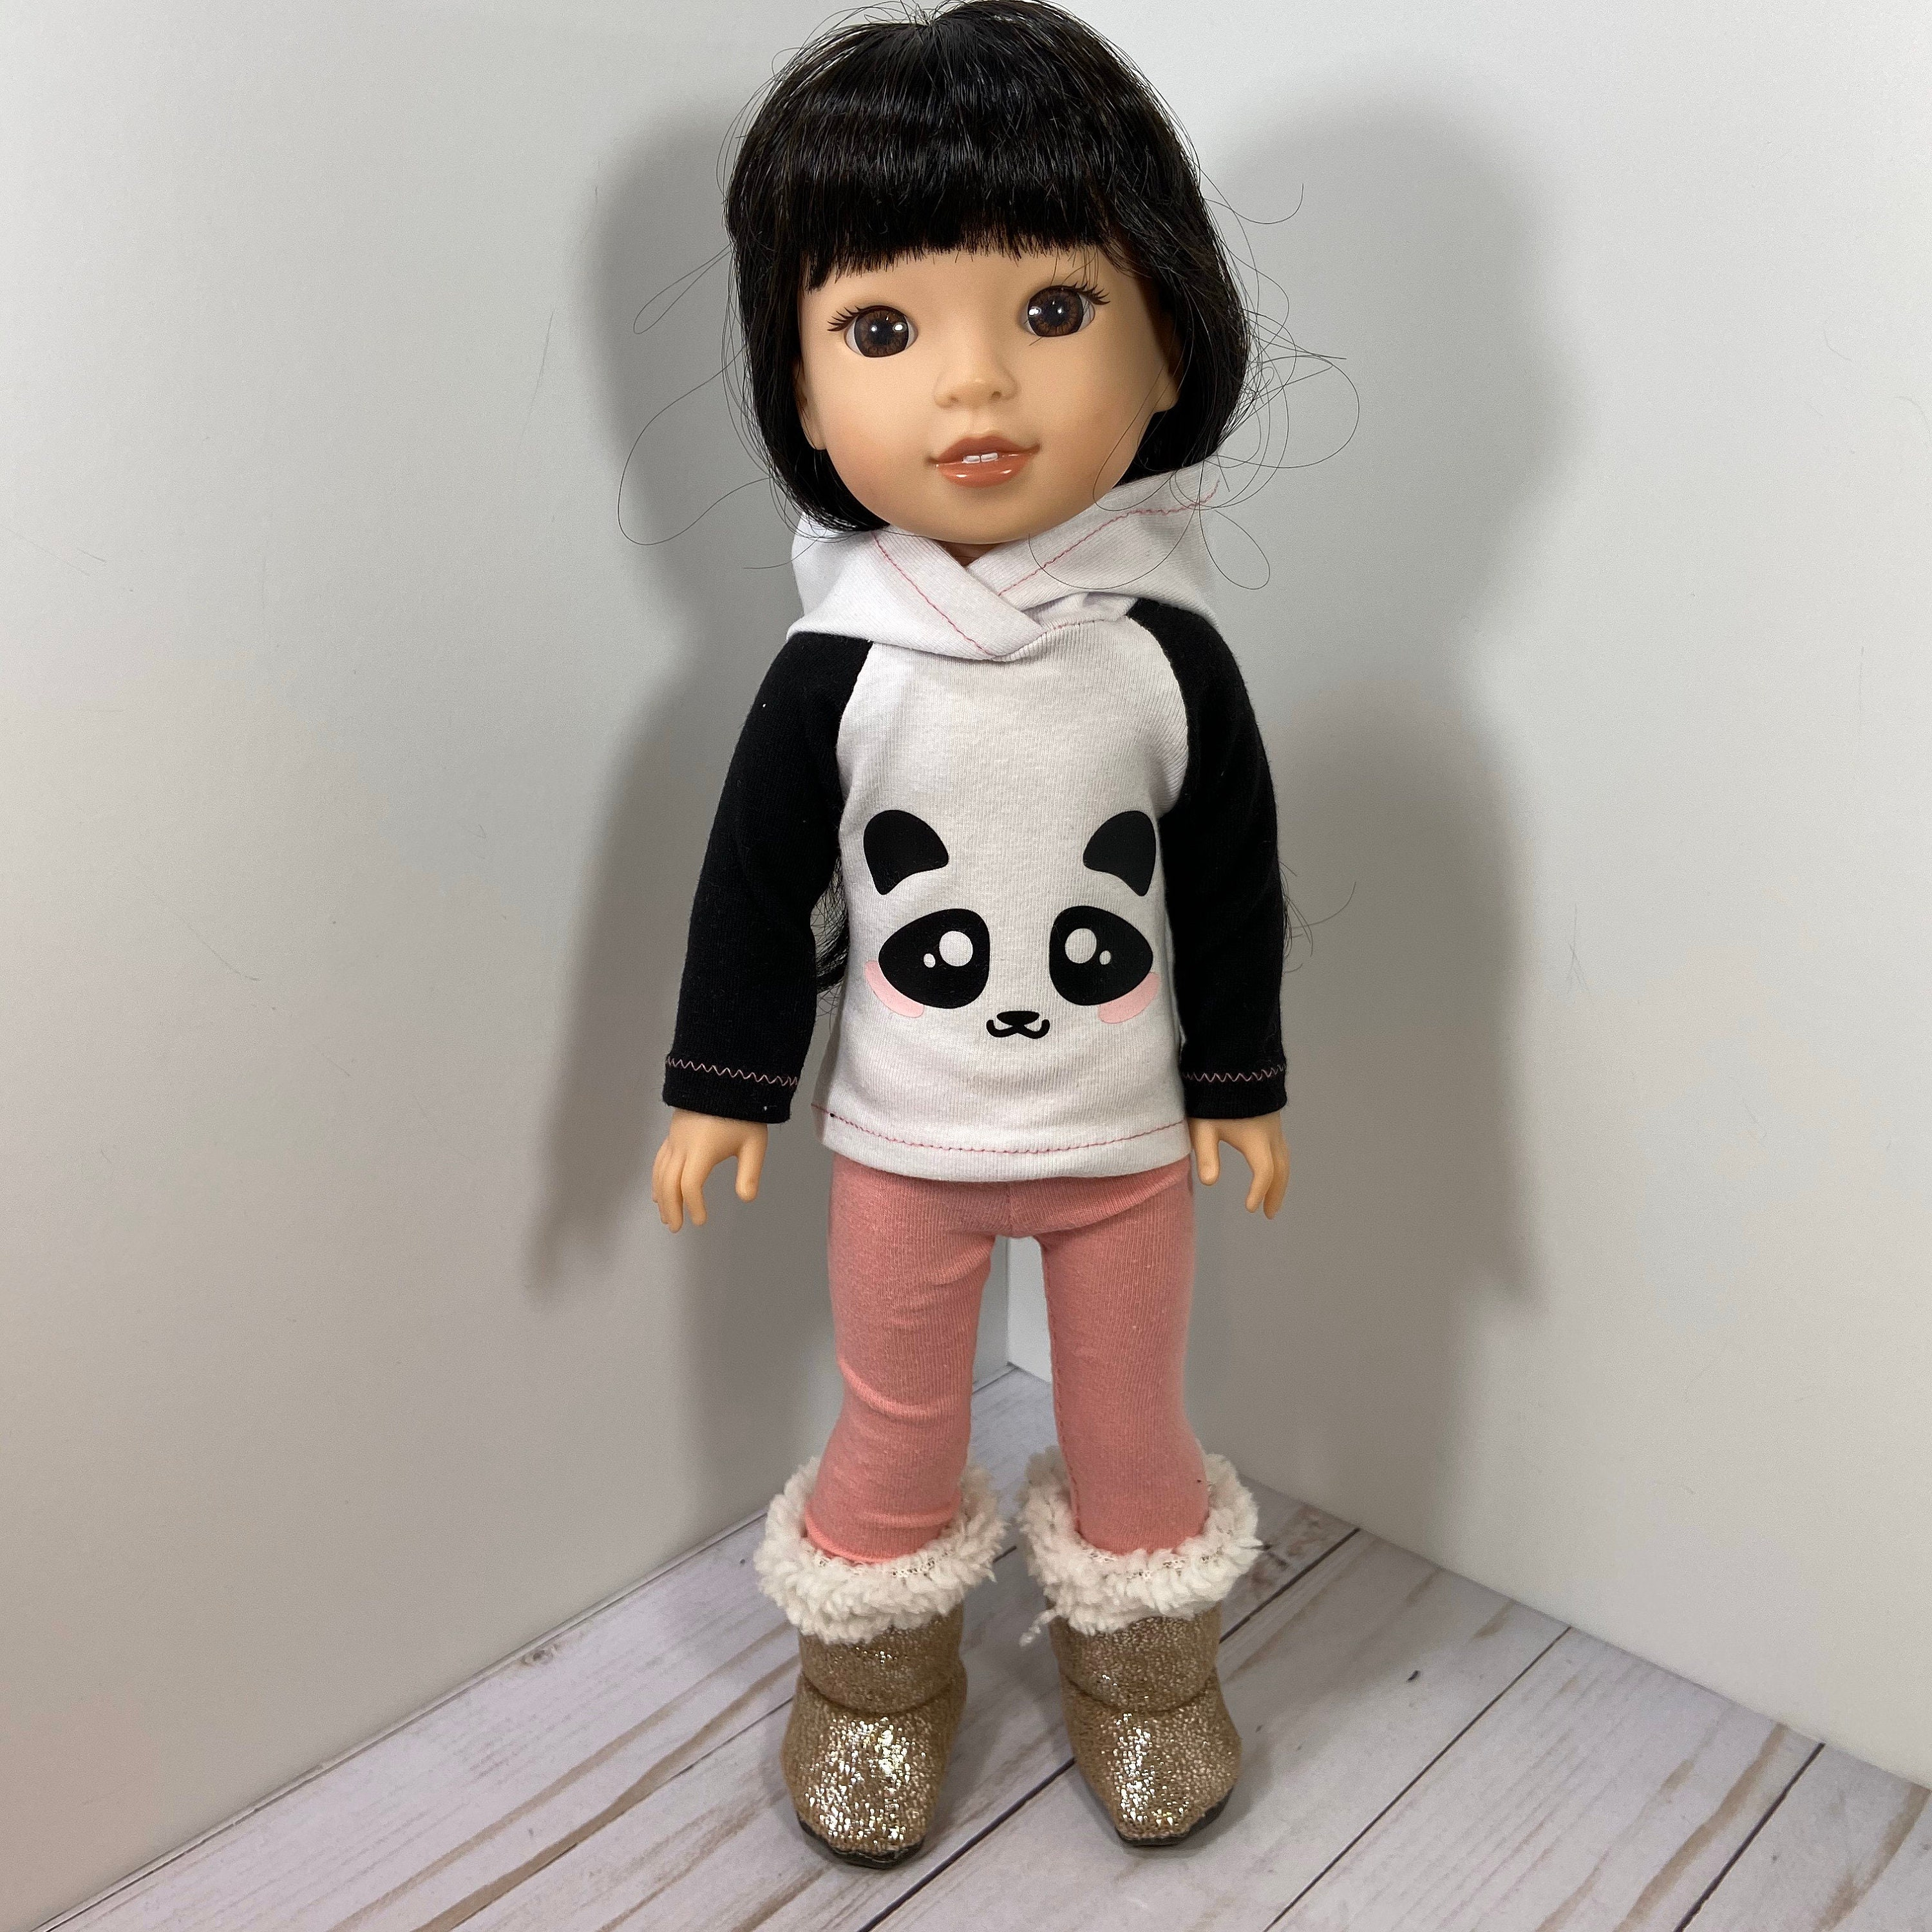 Welie Wisher Doll Leggins-Sweater